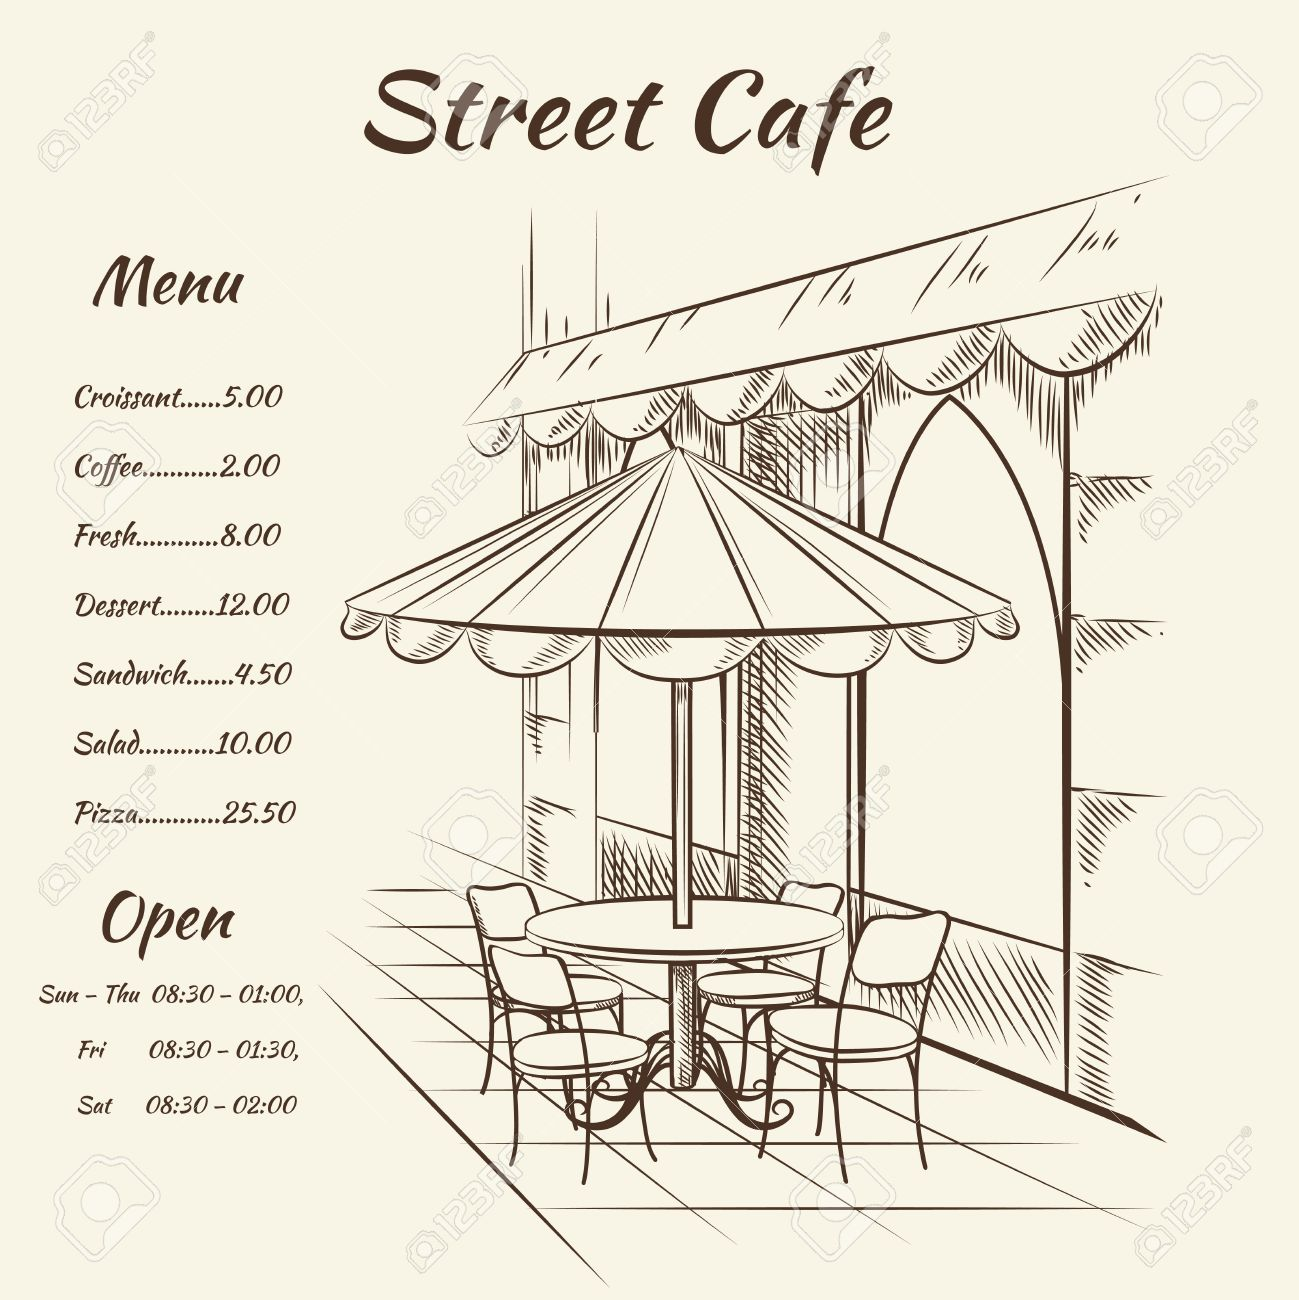 Hand Drawn Street Cafe Background Menu Design Sketch Restaurant Royalty Free Cliparts Vectors And Stock Illustration Image 41825080